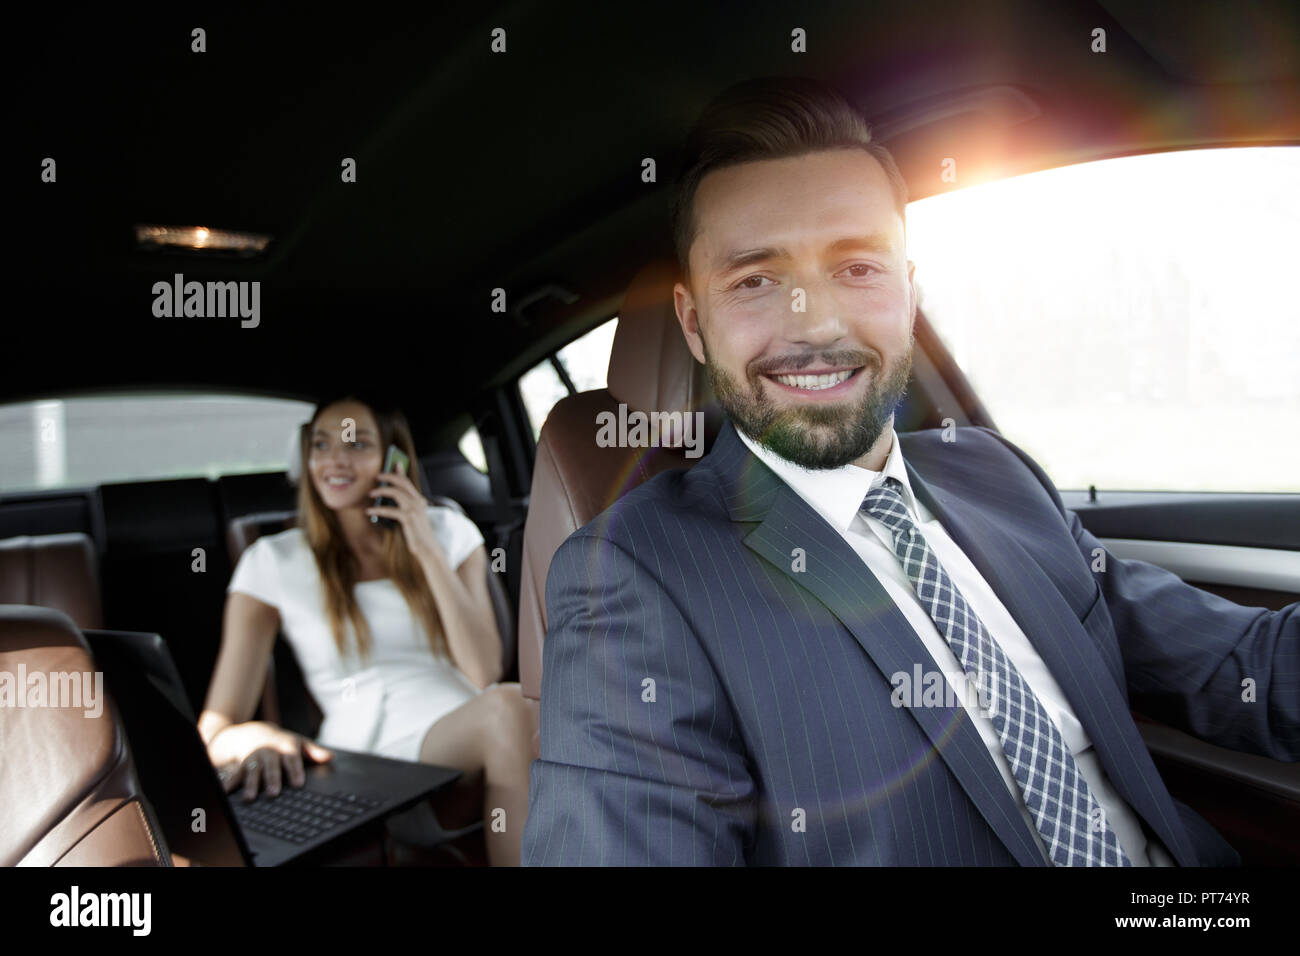 Young smiling handsome businessman in suit sitting in his luxurious car. Stock Photo